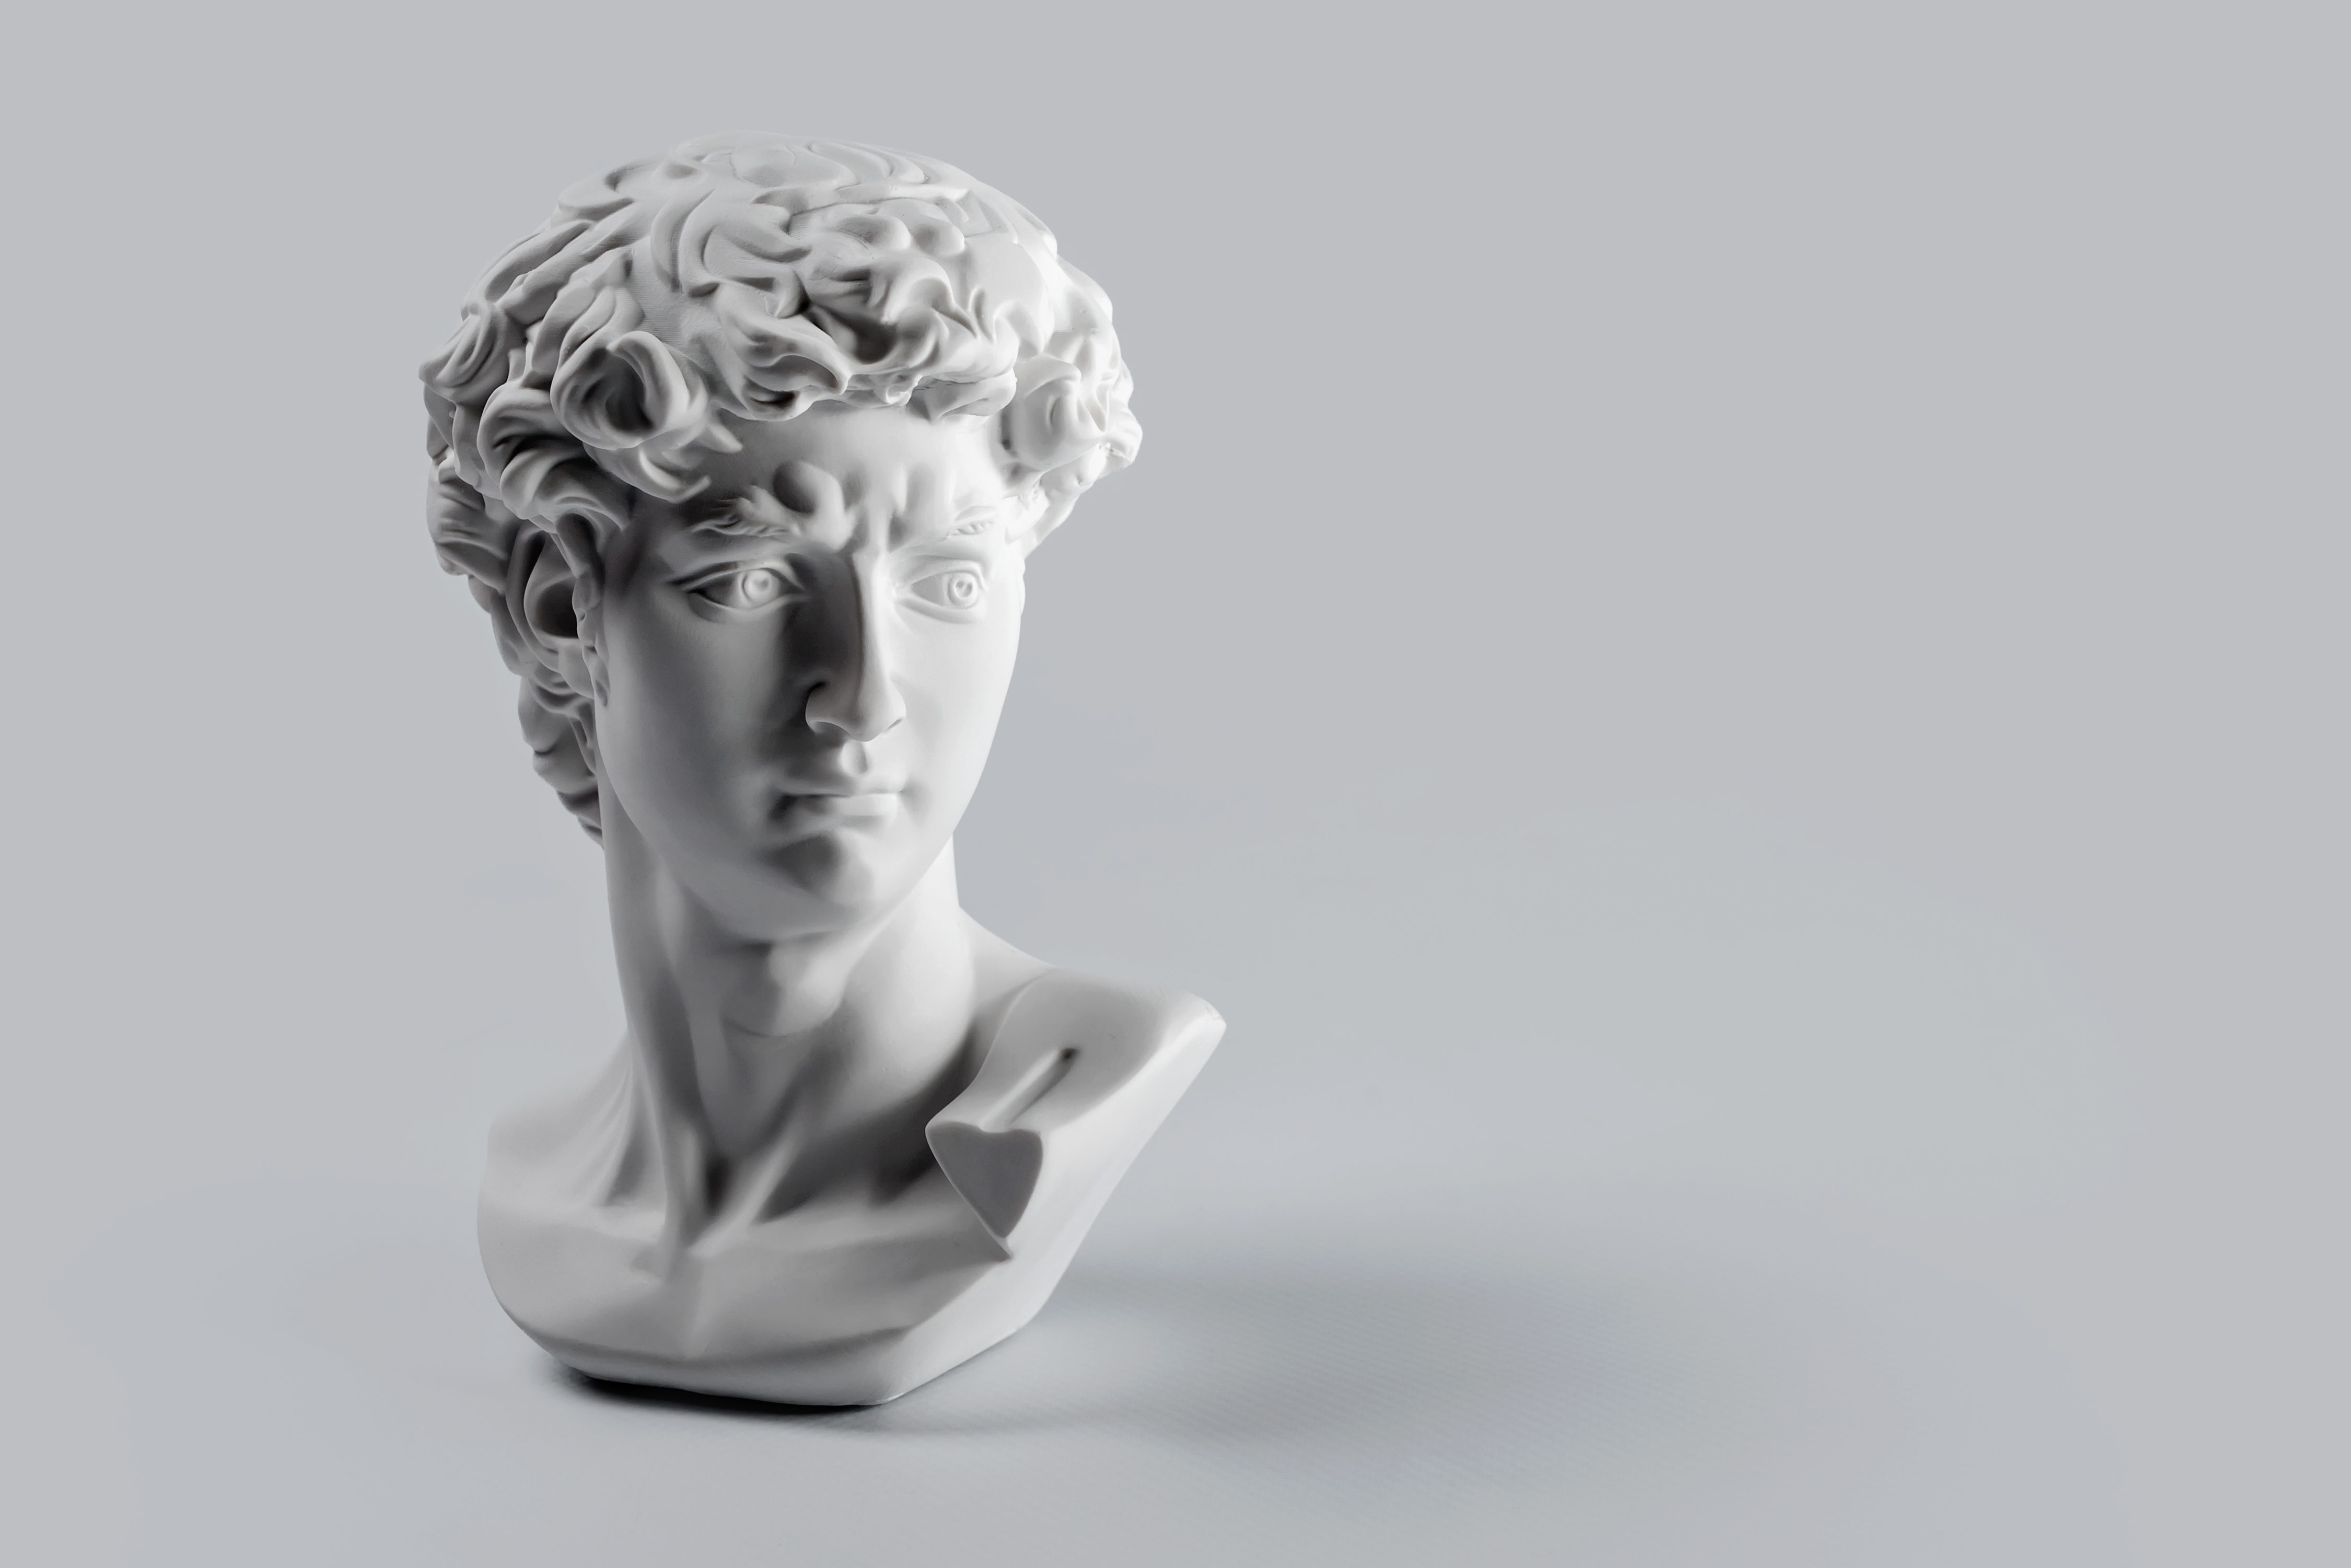 Gypsum statue of David's head. Michelangelo's David statue plaster copy on grey background with copyspace for text. Ancient greek sculpture, statue of hero.